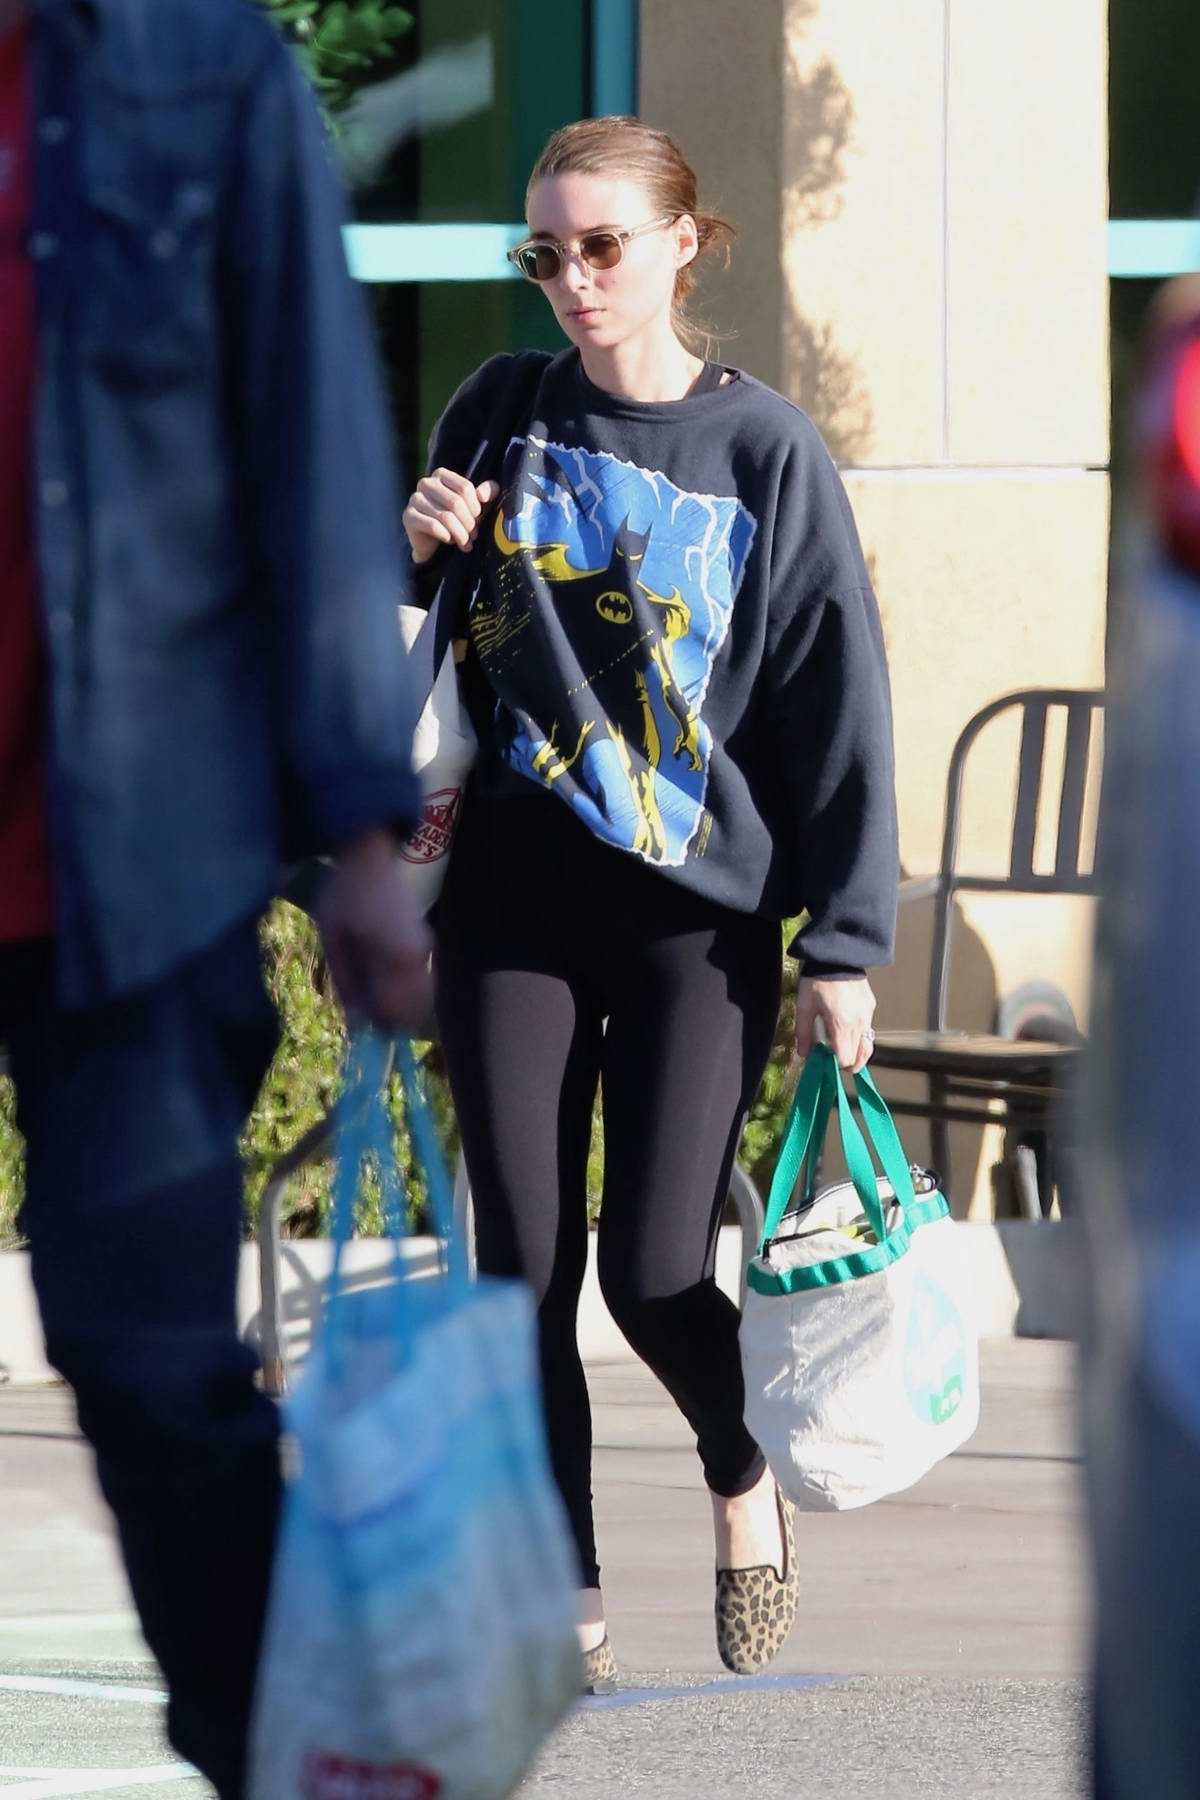 Rooney Mara stops by Gelson's to get in some grocery shopping in Studio City, Los Angeles